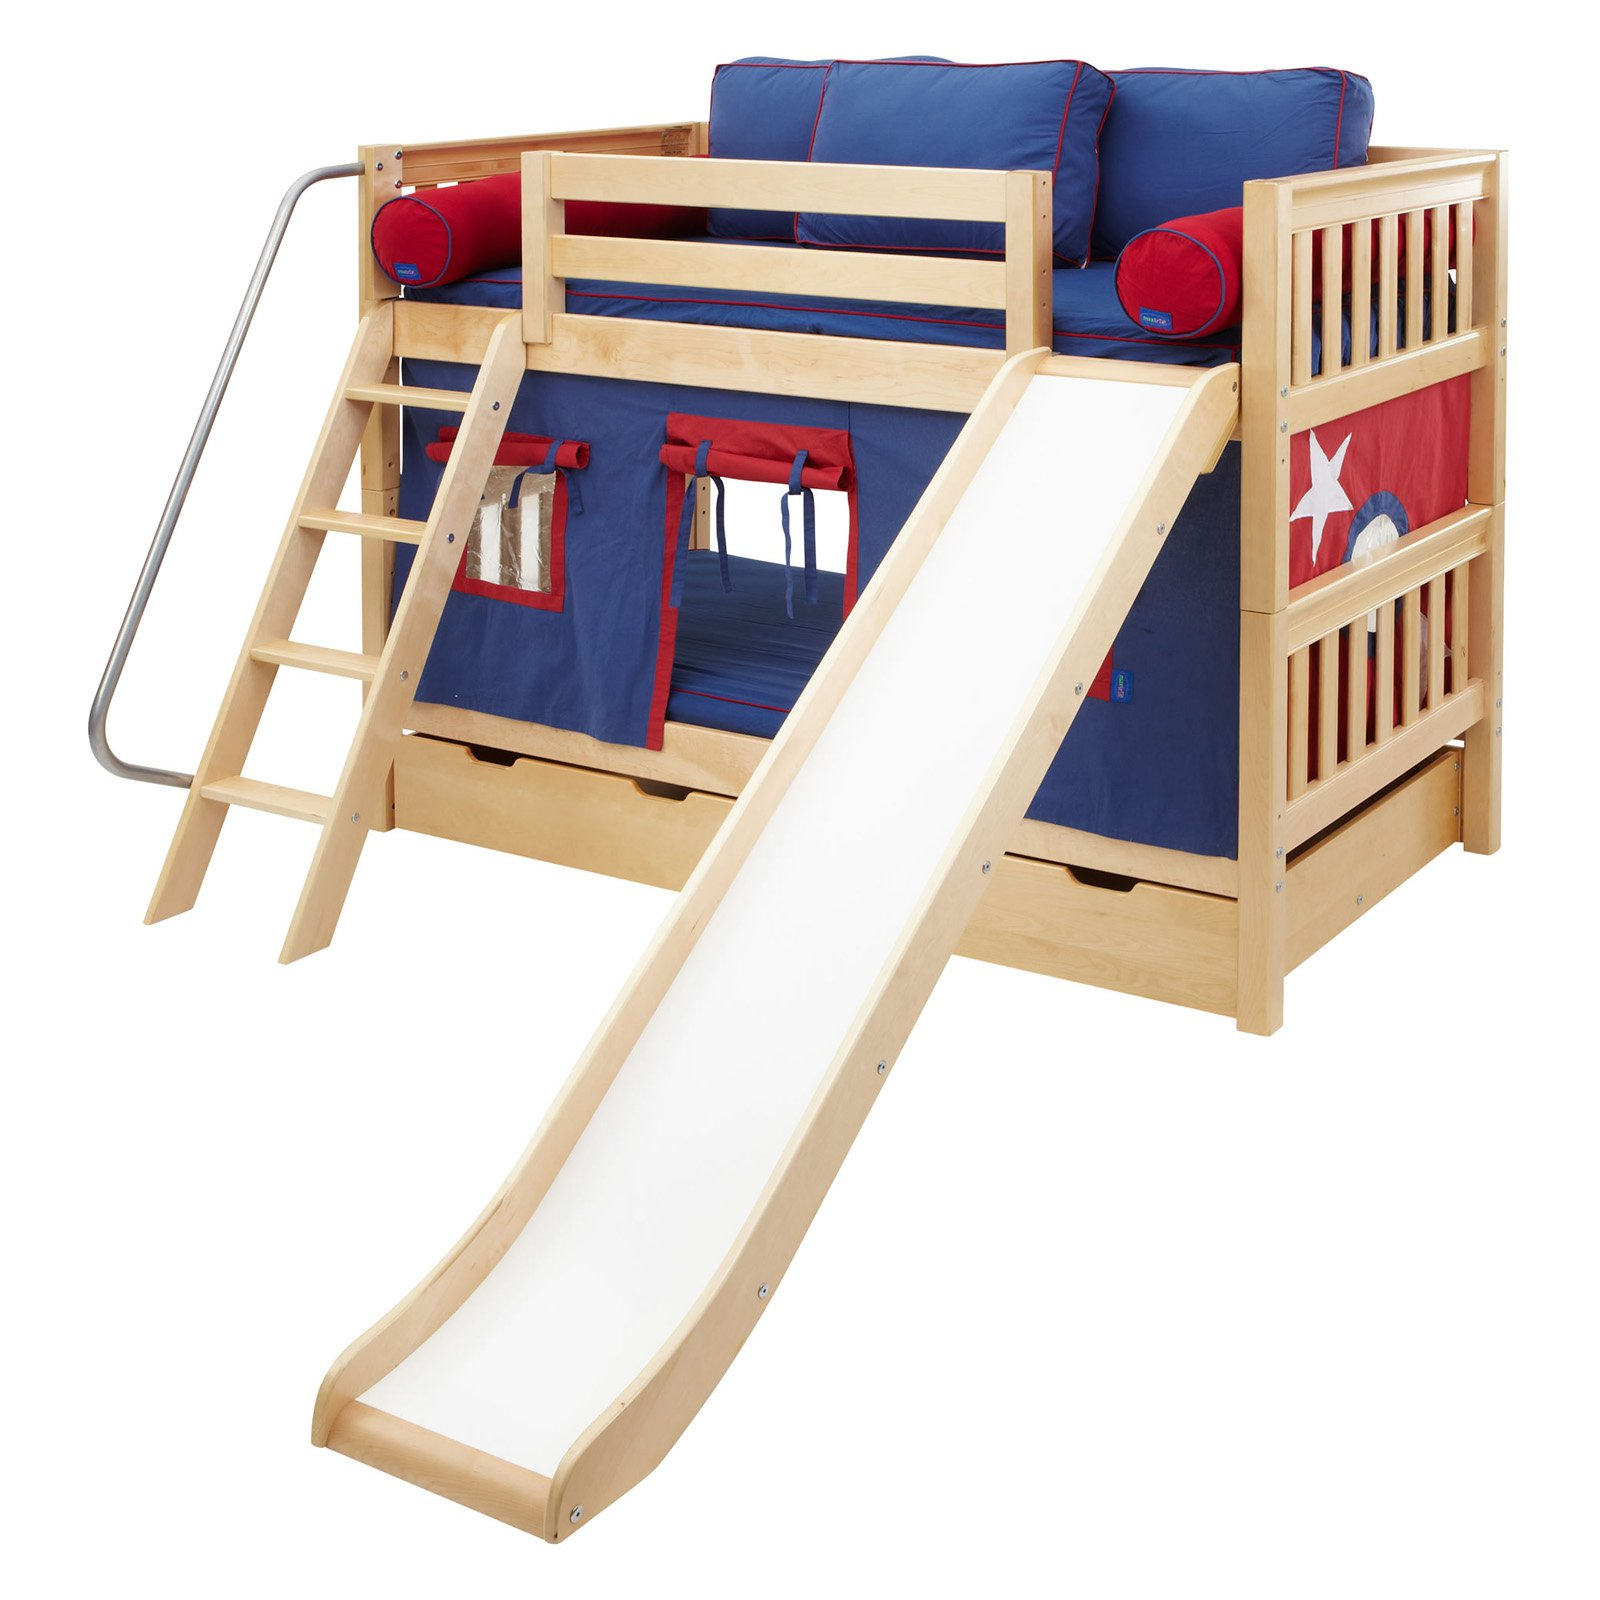 Laugh Boy Twin over Twin Slat Slide Tent Bunk Bed  sc 1 st  Walmart & Laugh Boy Twin over Twin Slat Slide Tent Bunk Bed - Walmart.com